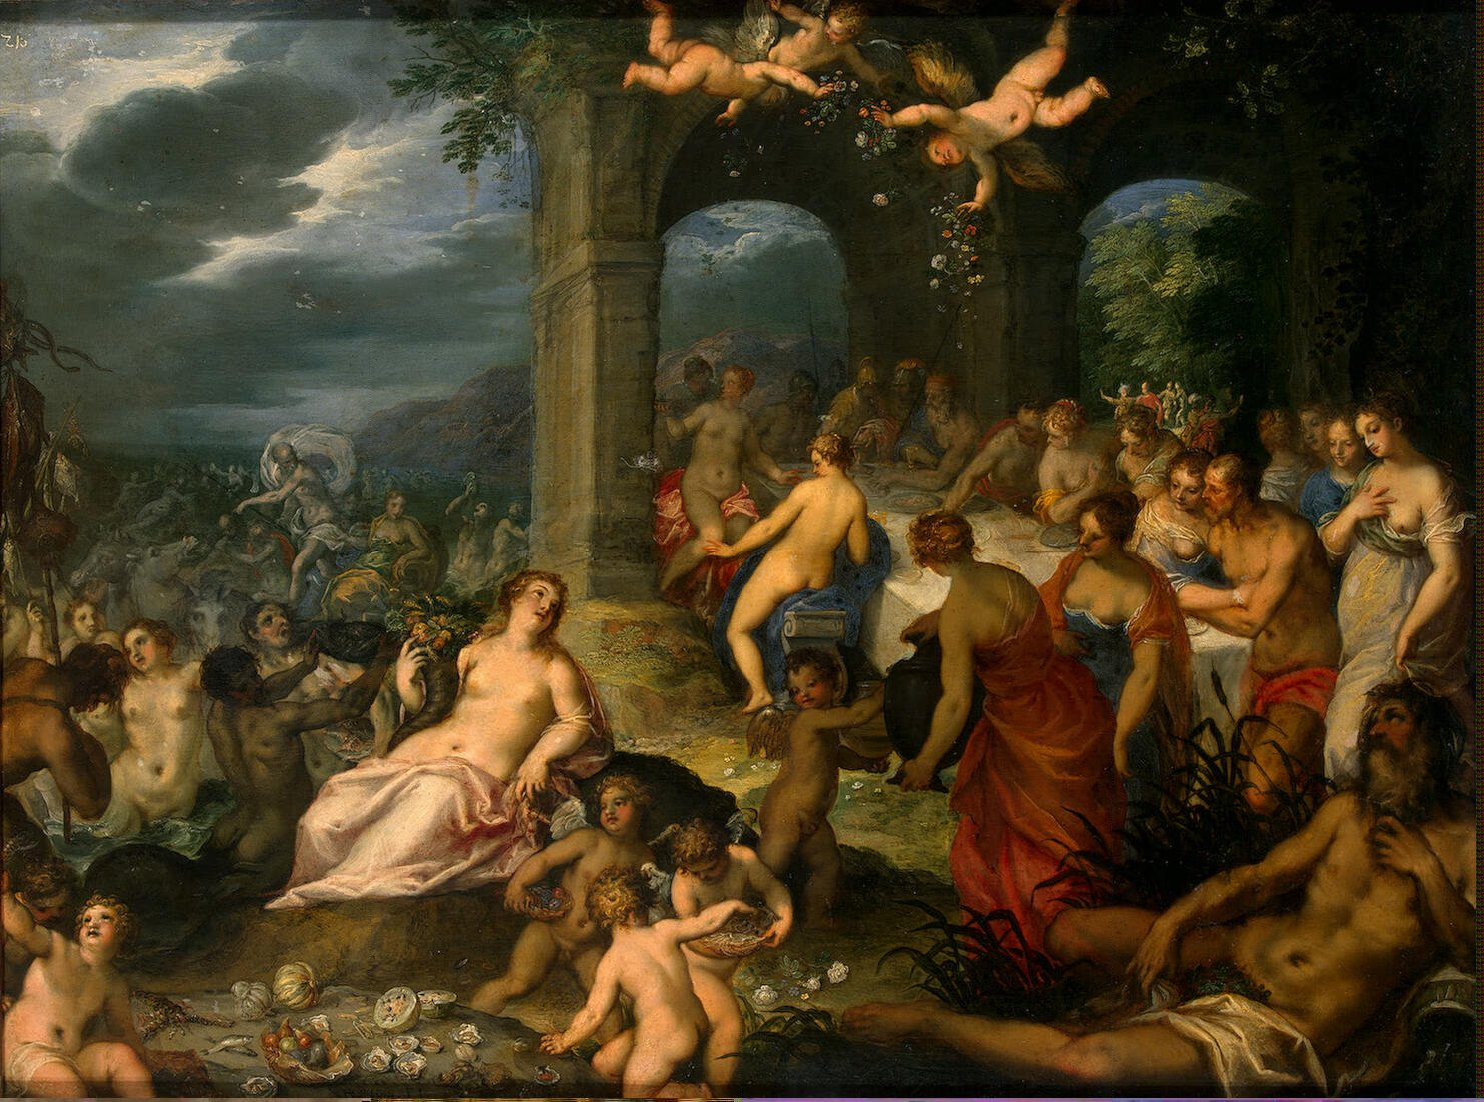 peleus and achilles relationship with the gods